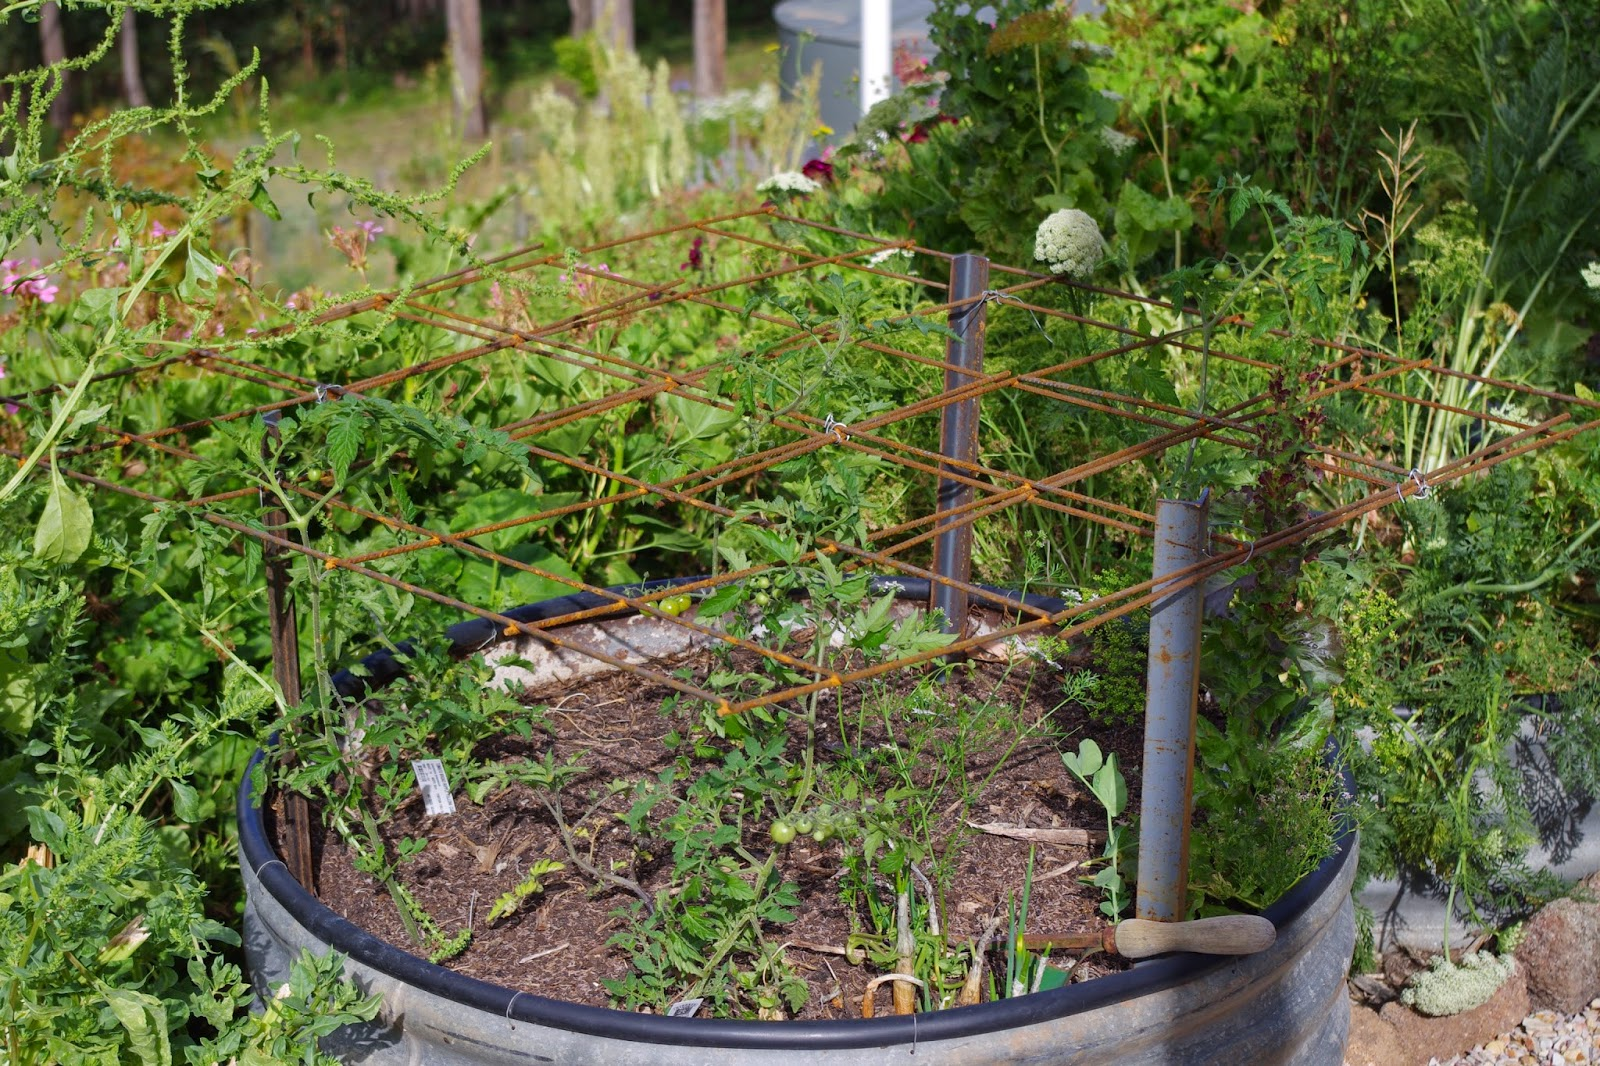 Recycled tomato stakes